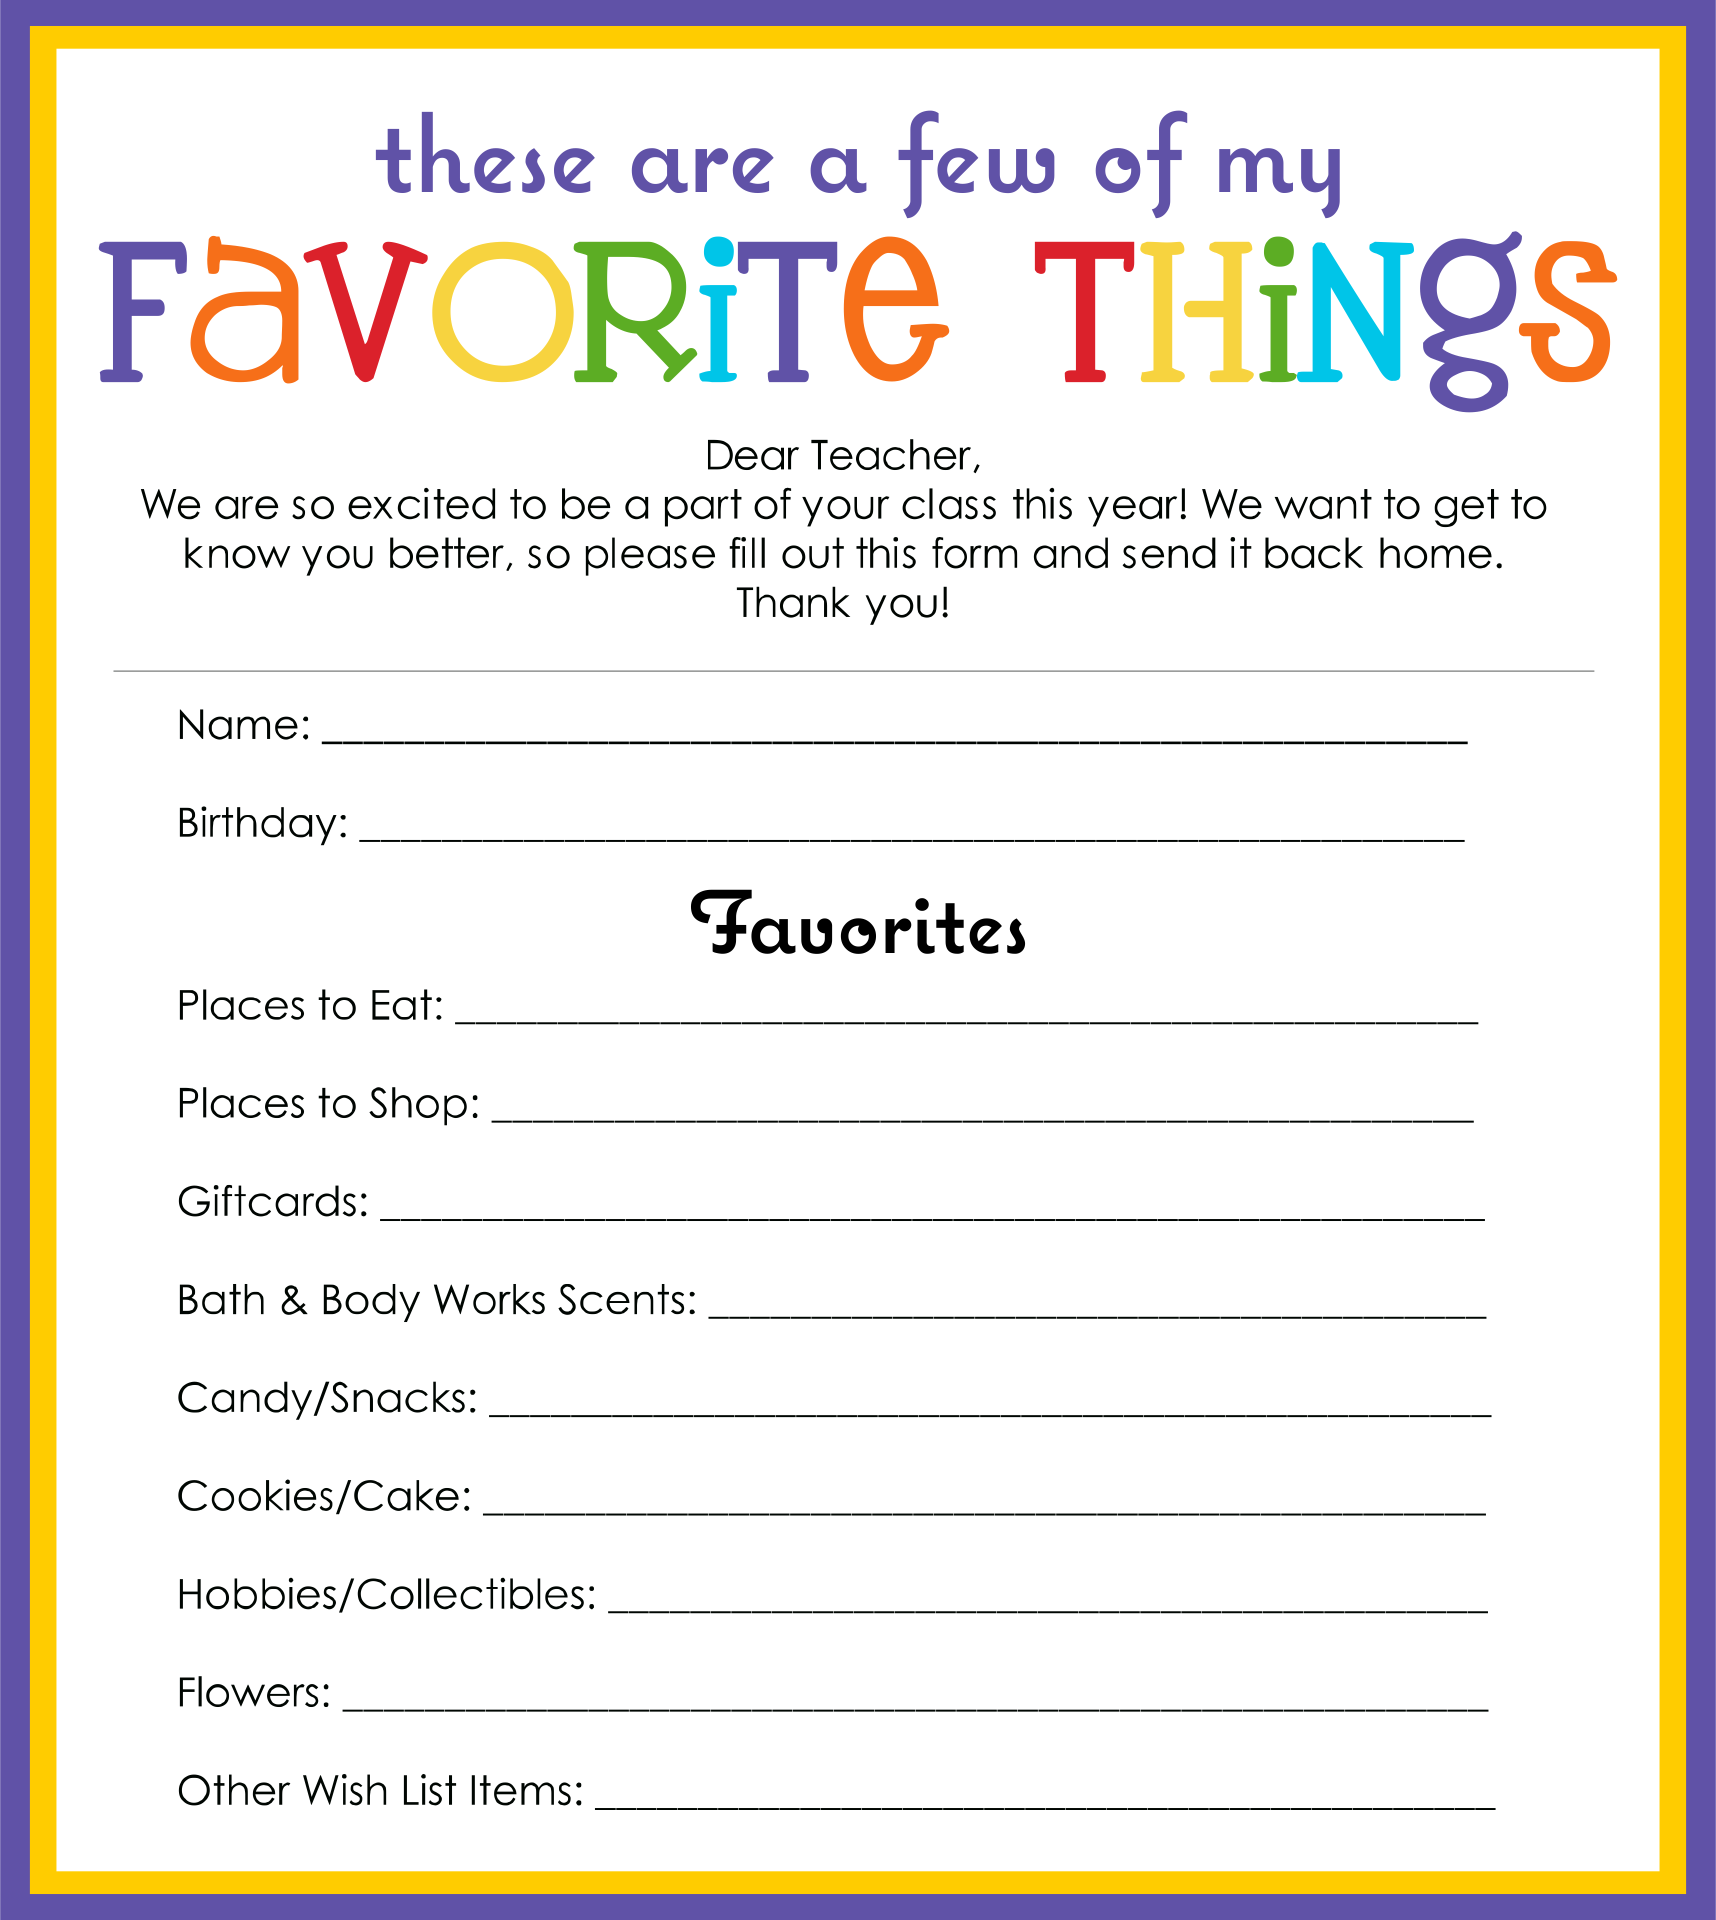 5 Images of My Favorite Things Template Printable